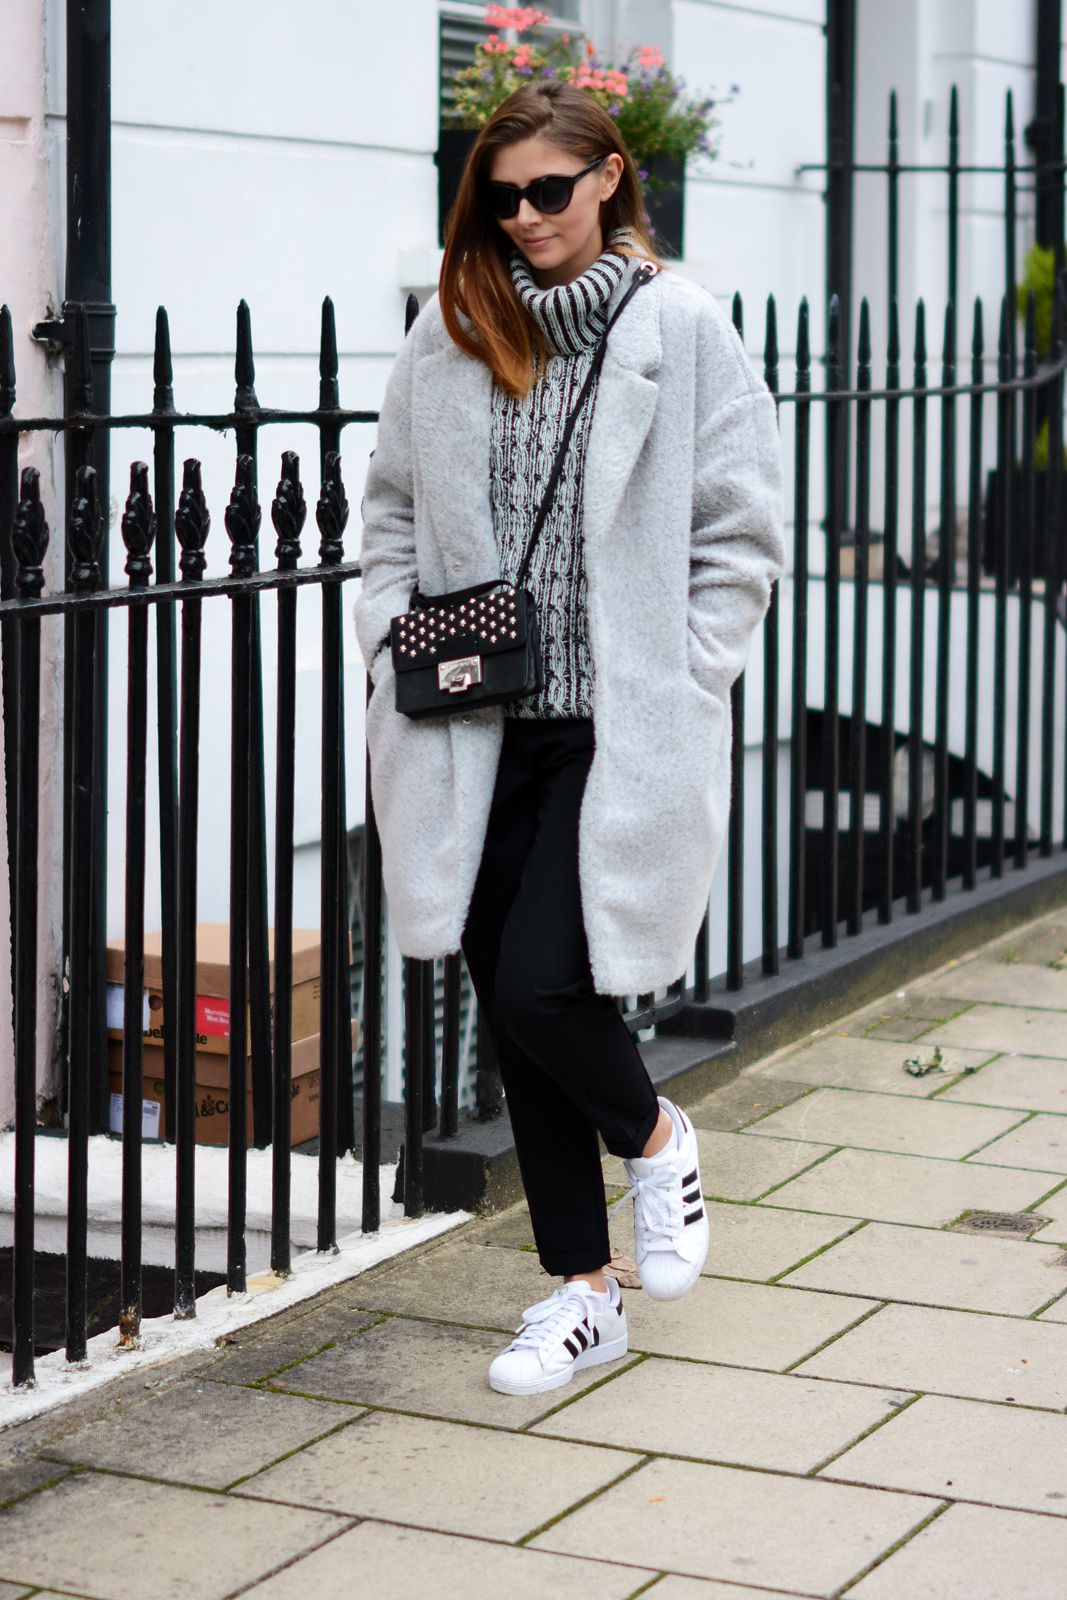 gusto persecucion anfitriona  20 Ways to Wear Adidas Sneakers Like a Street Style Star | Adidas superstar  outfit, Adidas outfit, Superstar outfit